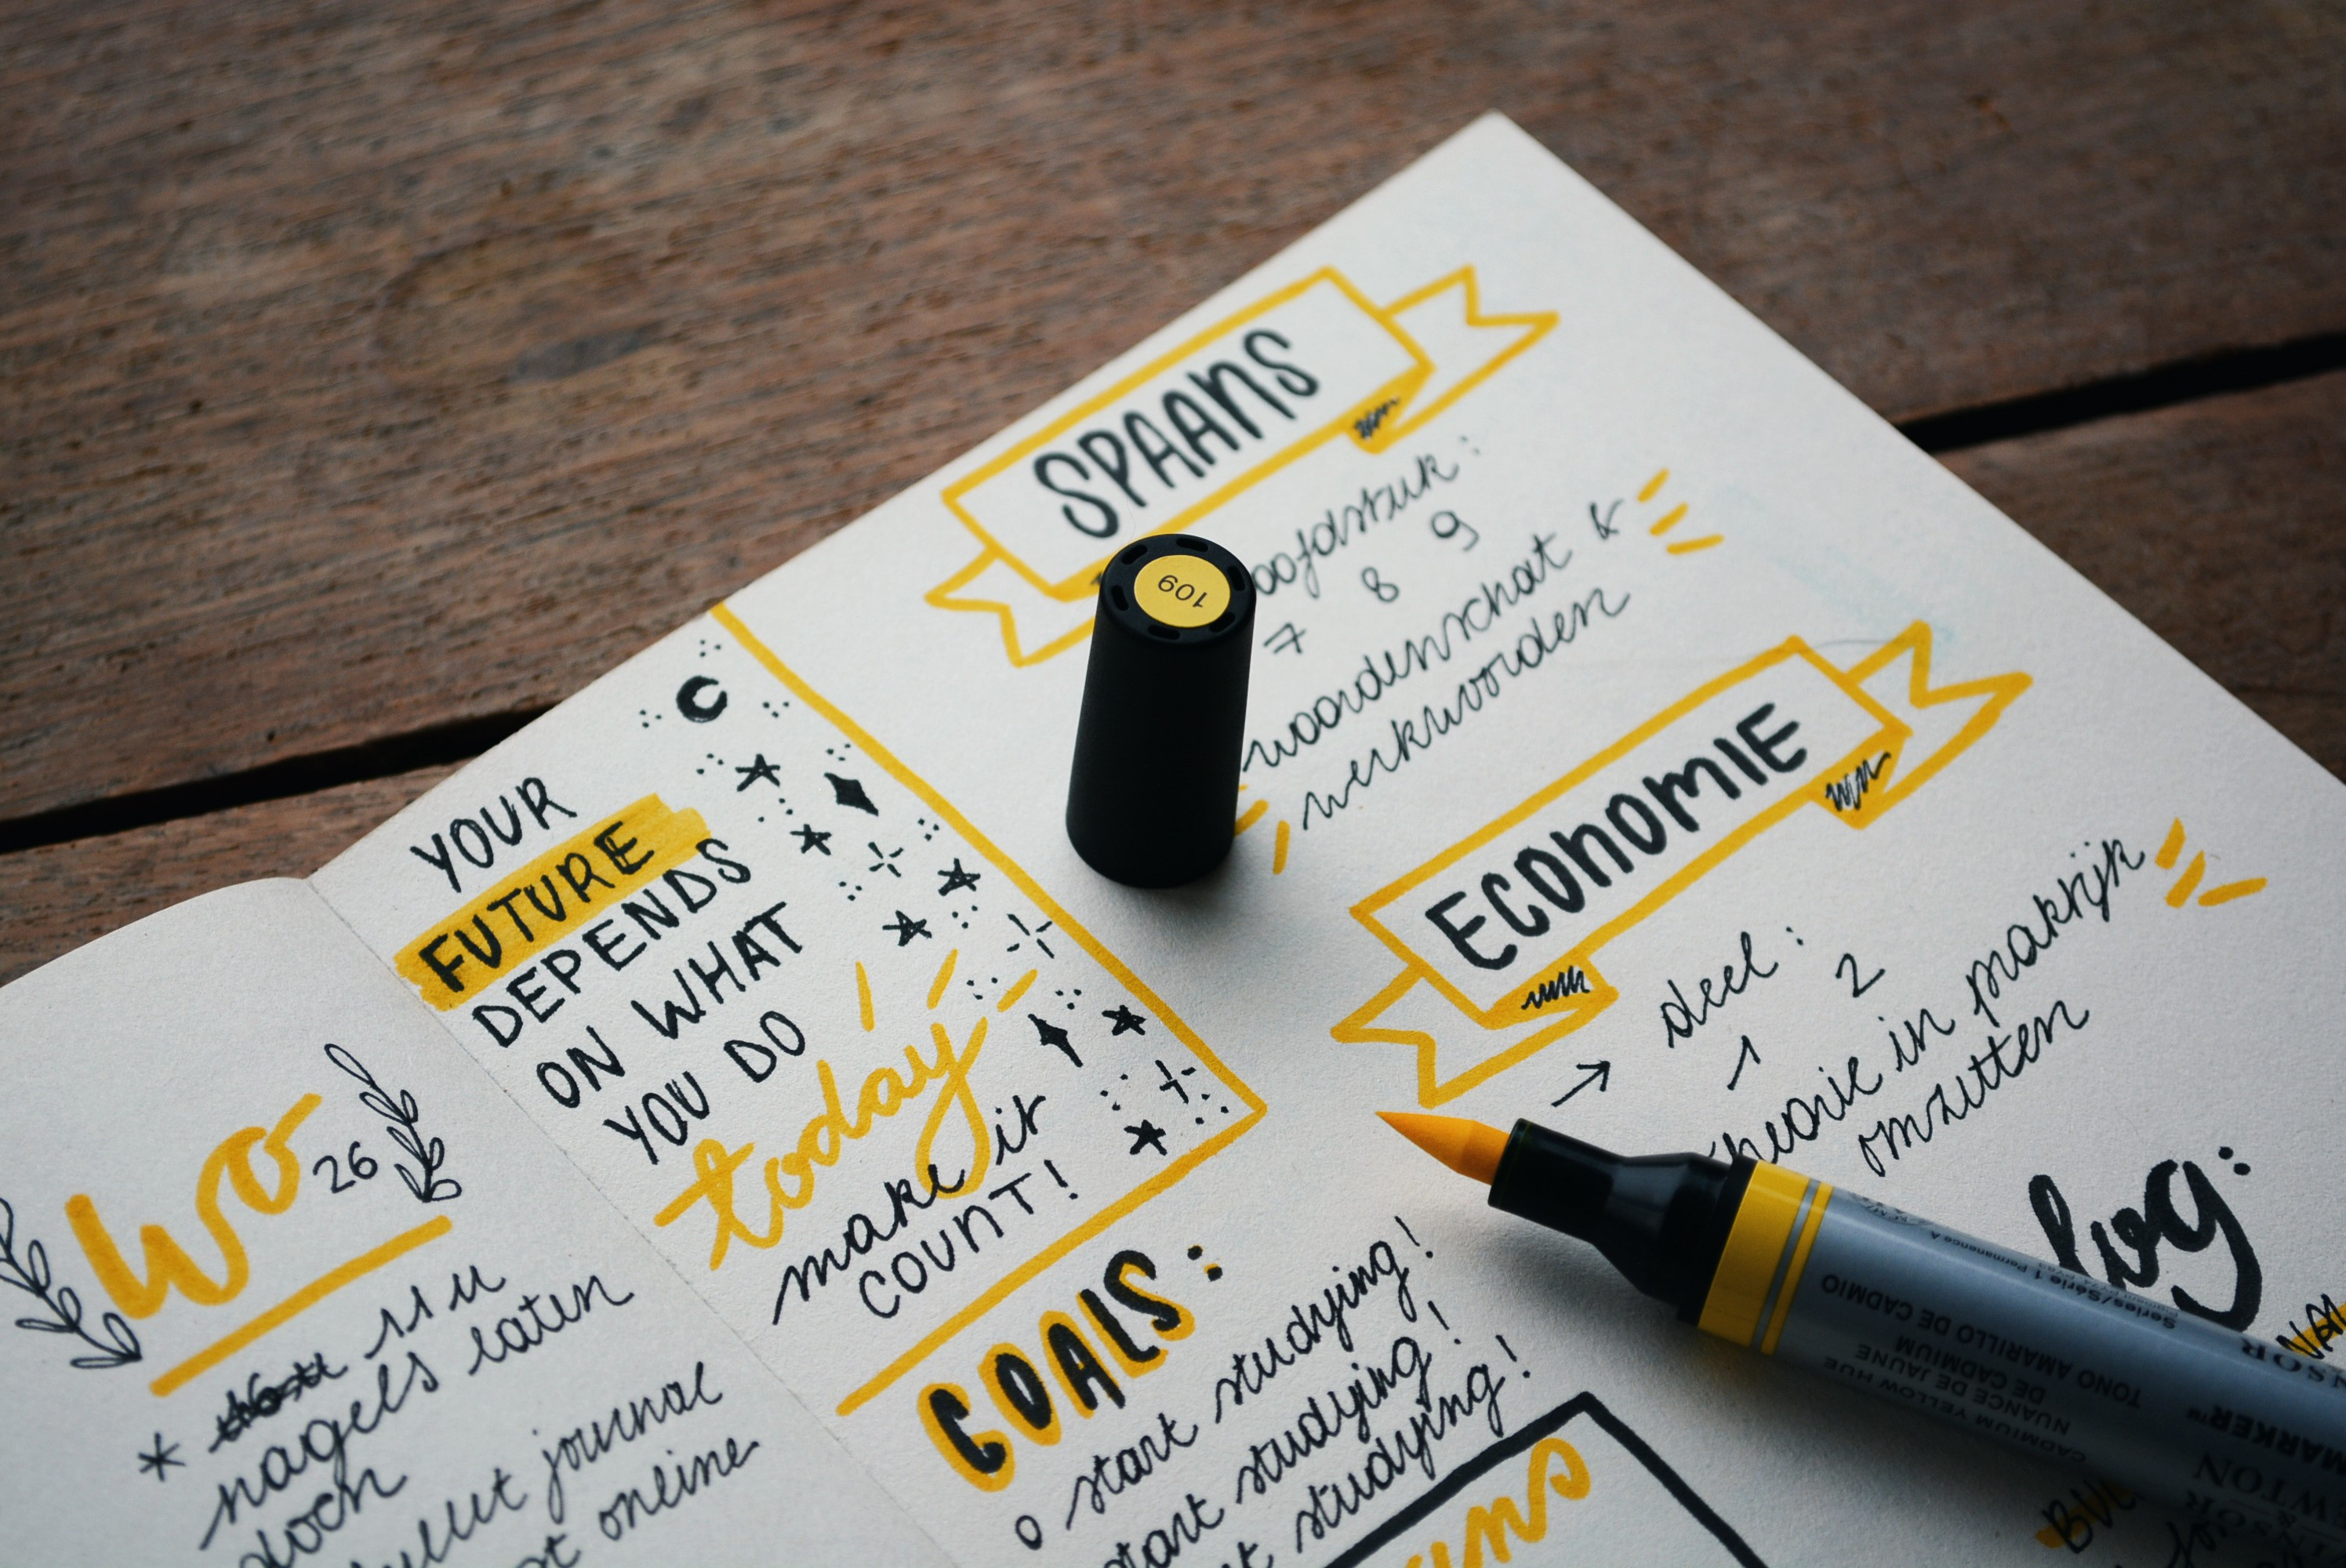 notebook about goal setting and committment to blogging